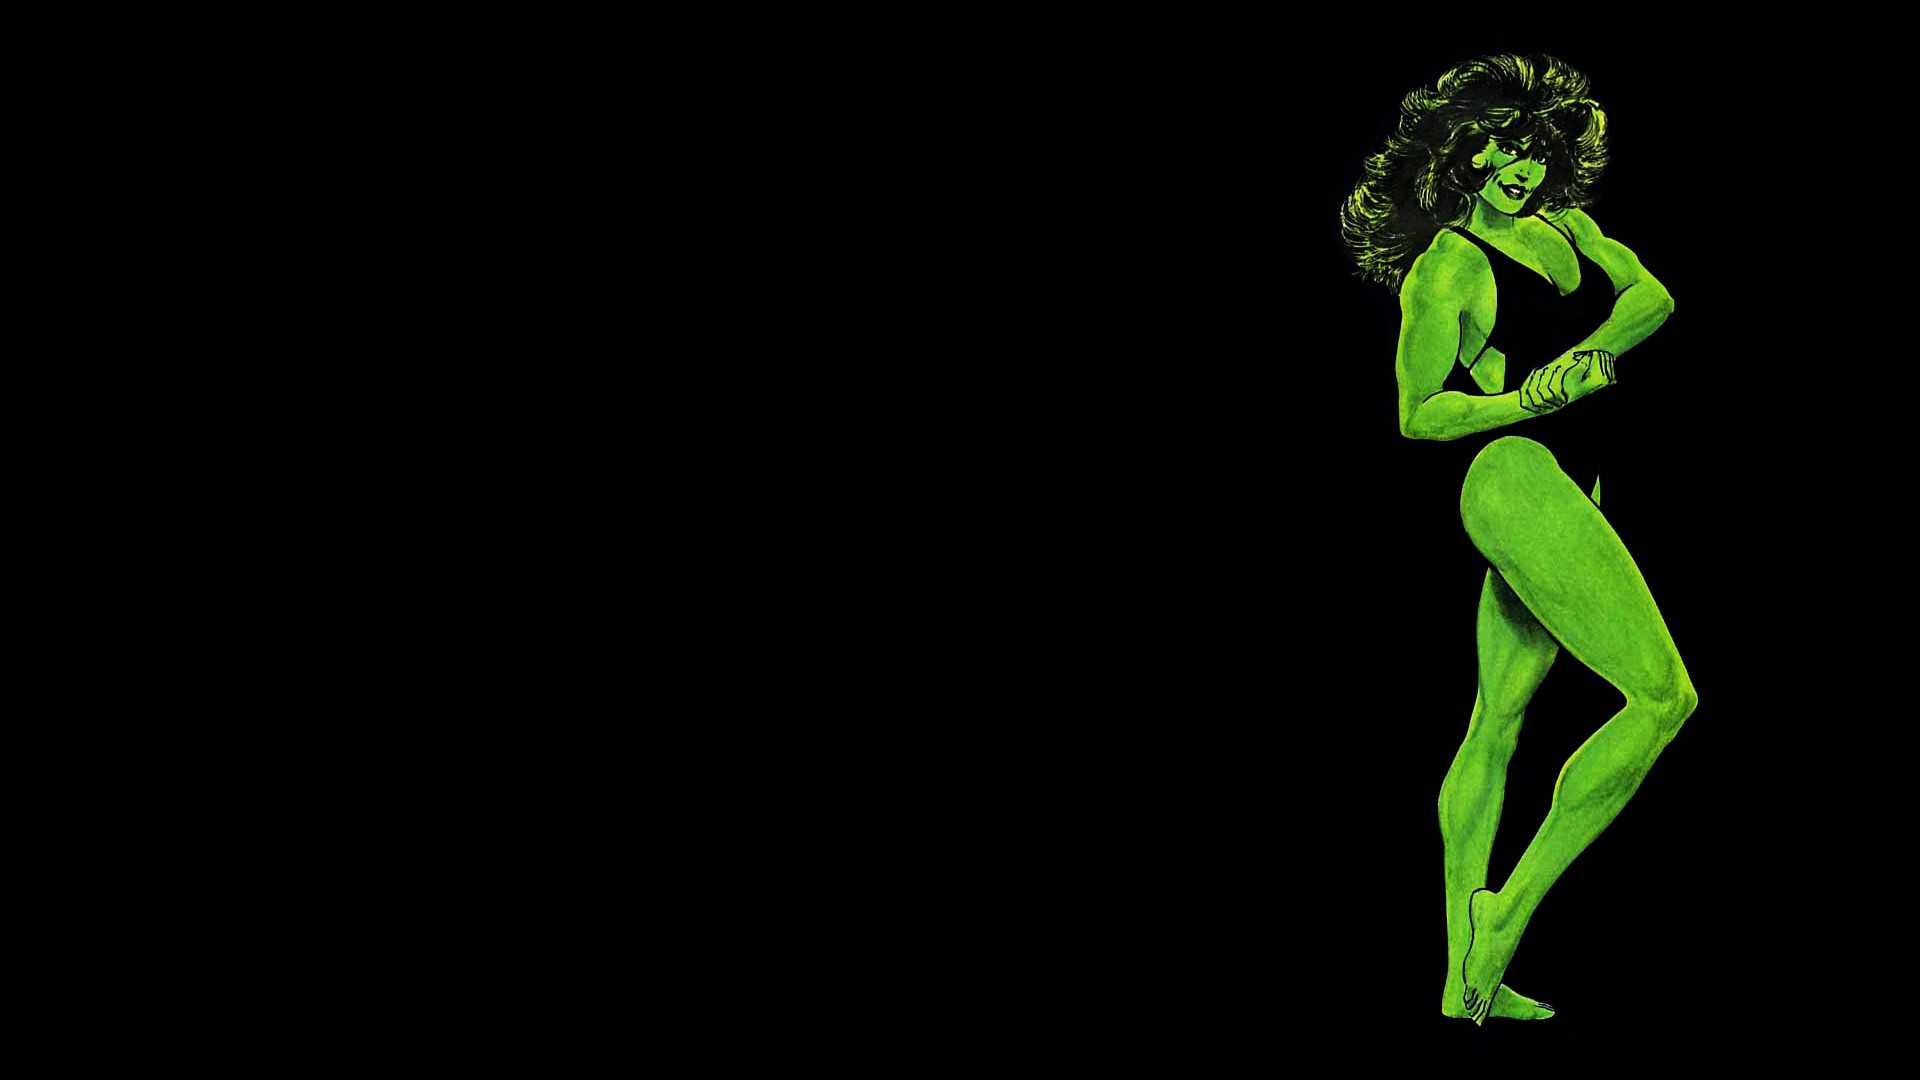 She Hulk Computer Wallpapers Desktop Backgrounds 1920x1080